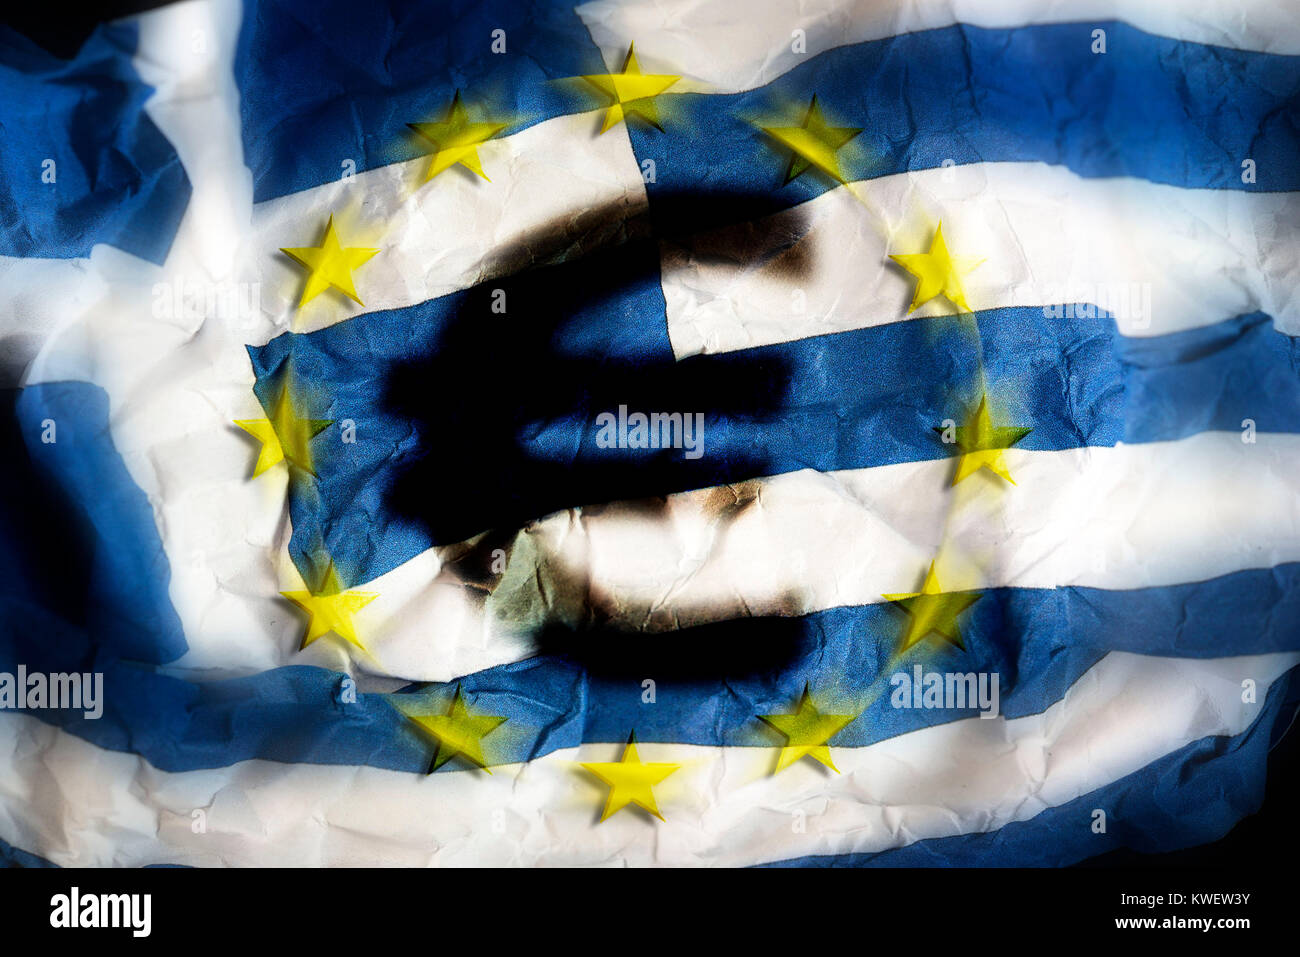 Crumpled Greek flag with eurosign, symbolic photo debt quarrel, Zerknitterte Griechische Fahne mit Eurozeichen, Stock Photo